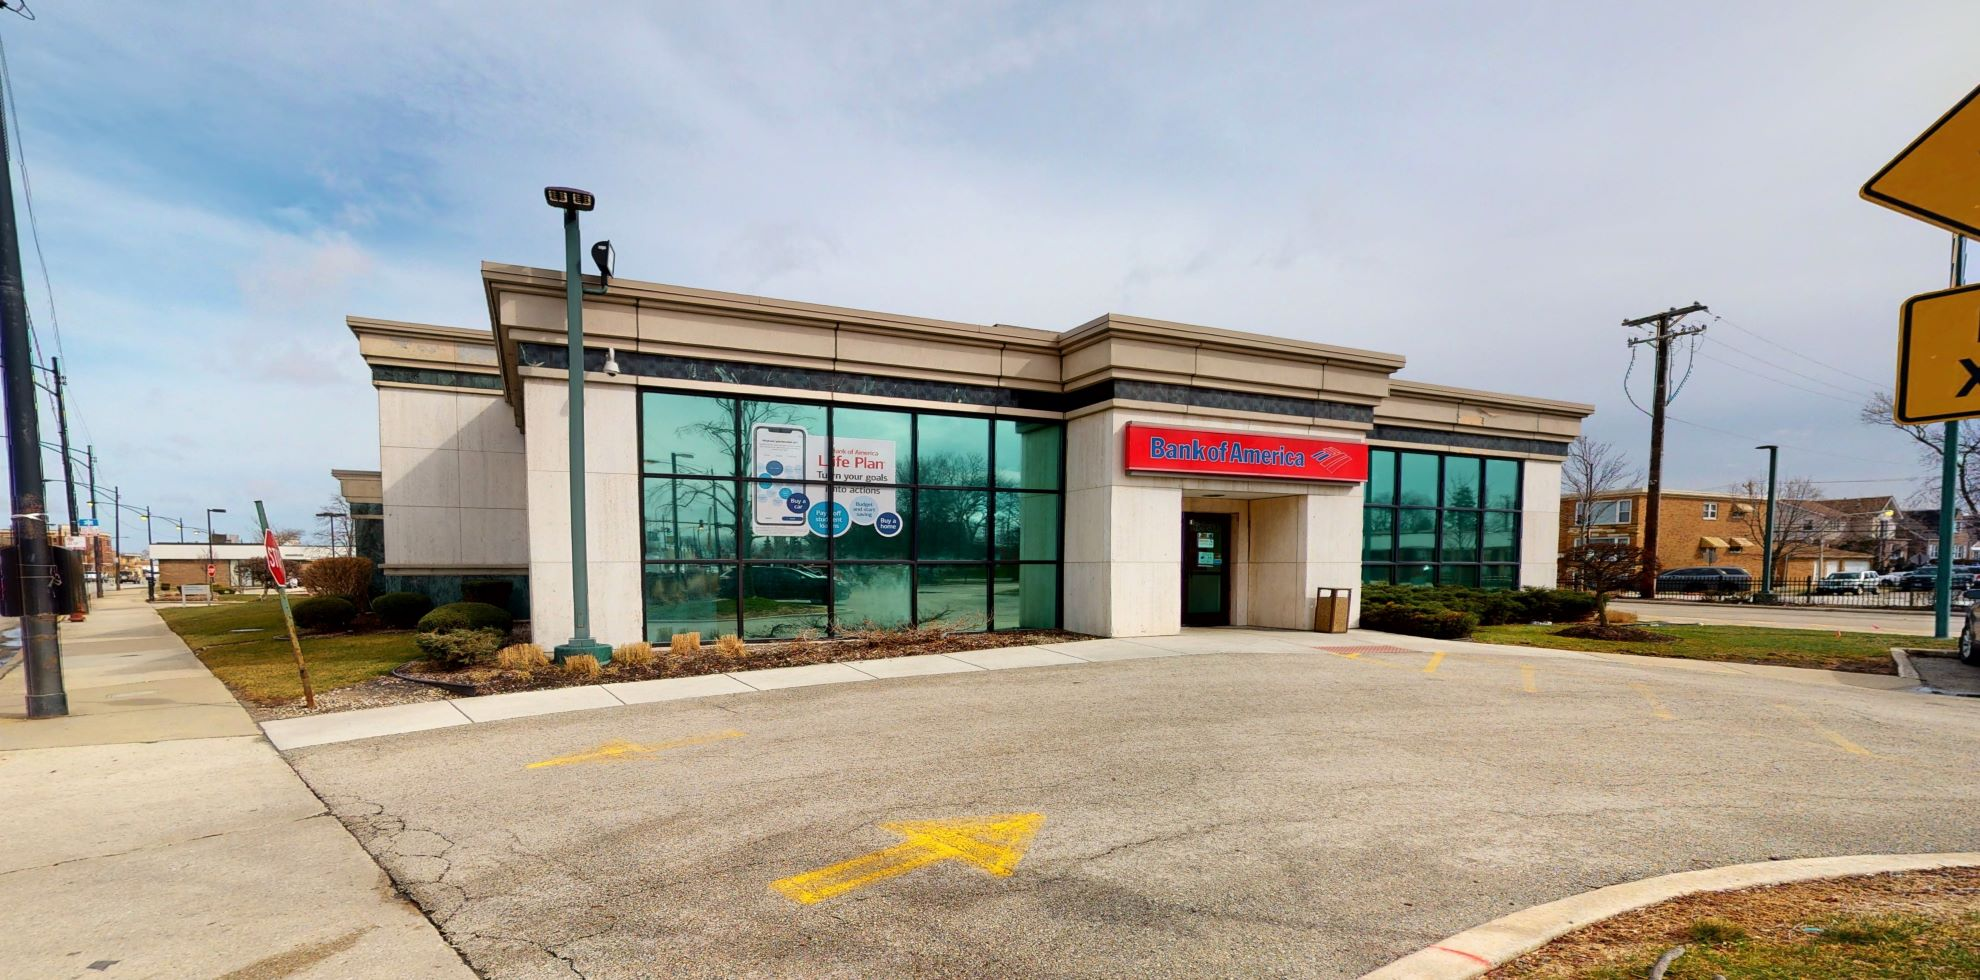 Bank of America financial center with drive-thru ATM | 6331 S Archer Ave, Chicago, IL 60638